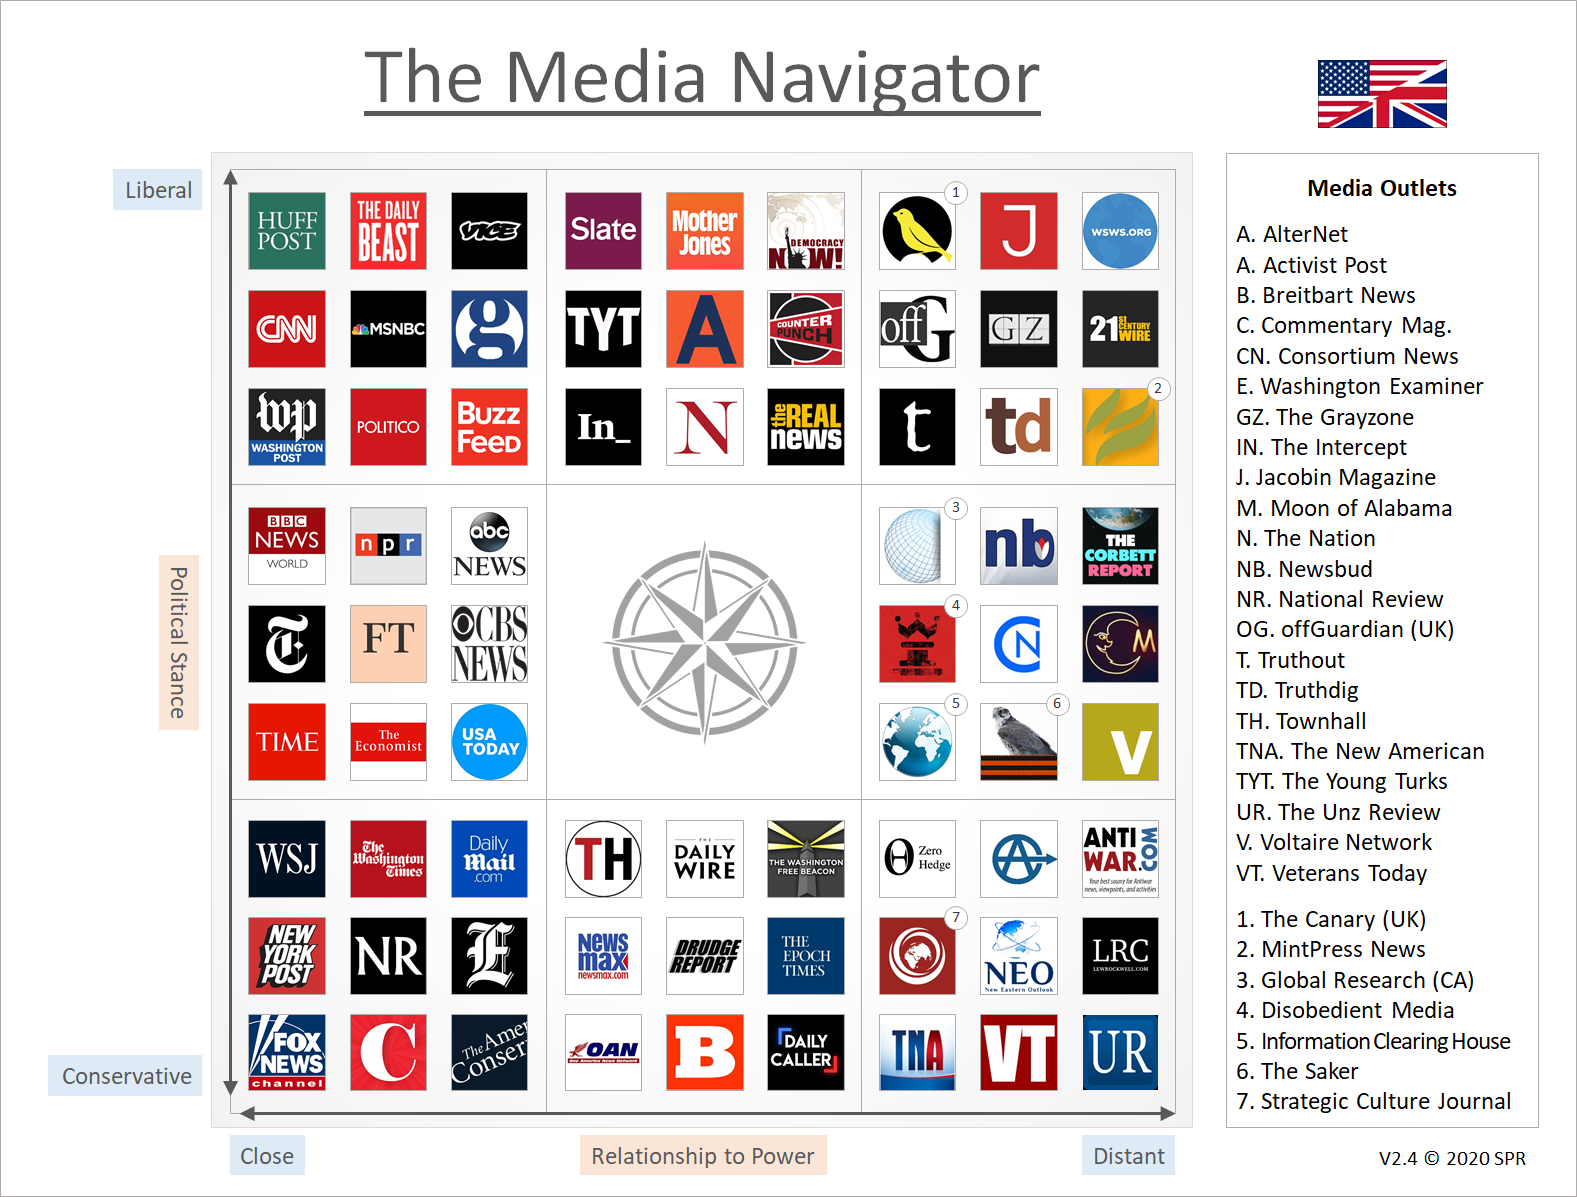 The Media Navigator